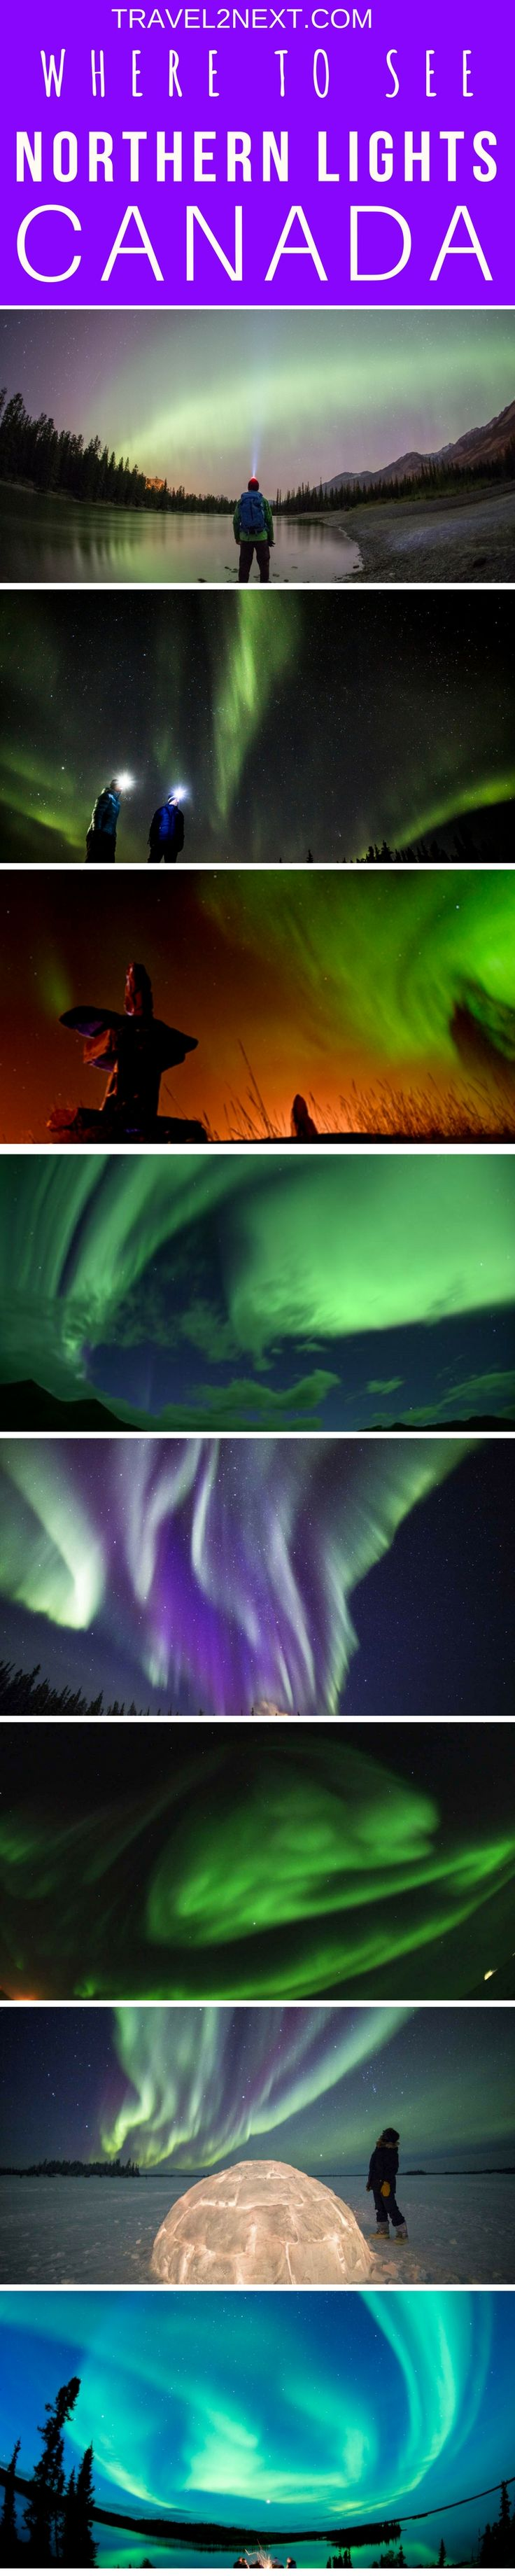 Experience the Northern Lights in Canada. The Aurora Borealis is an amazing light show.